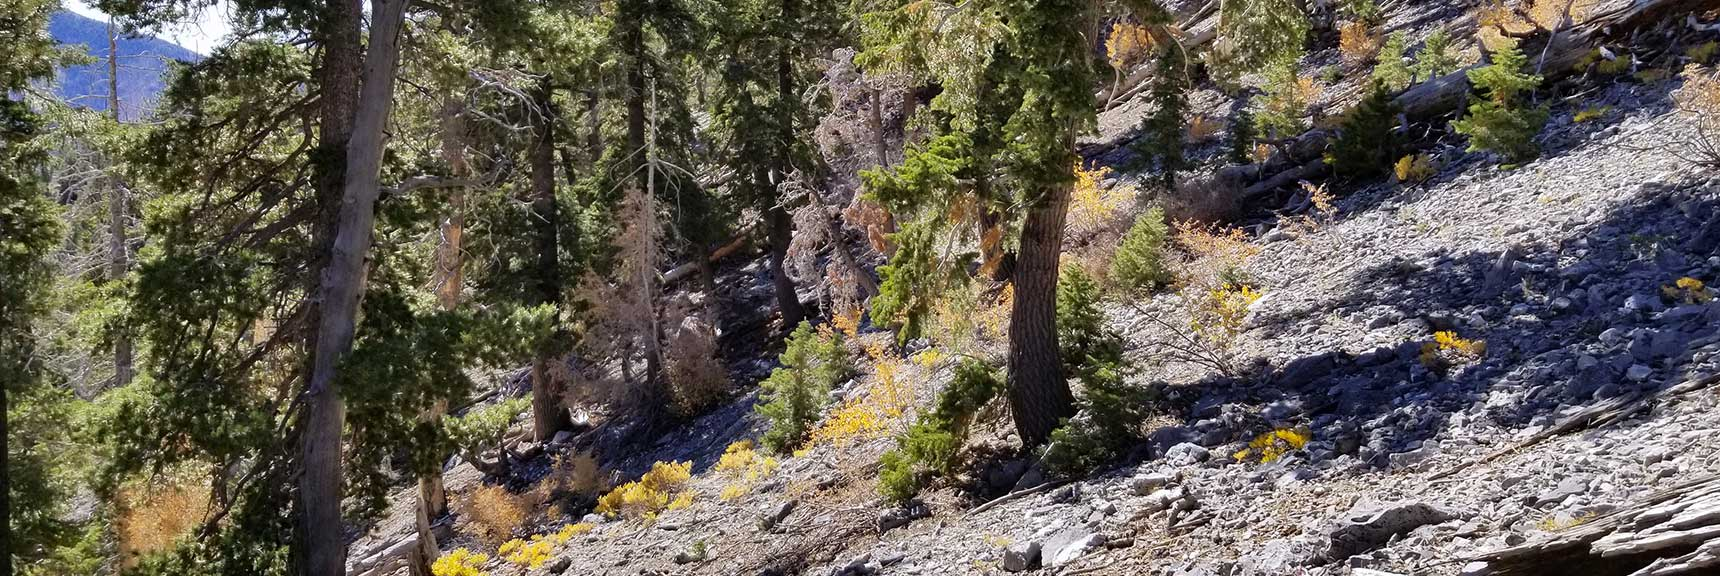 Traversing the Avalanche Slope on the East Side of Cockscomb Ridge in Mt. Charleston Wilderness, Nevada